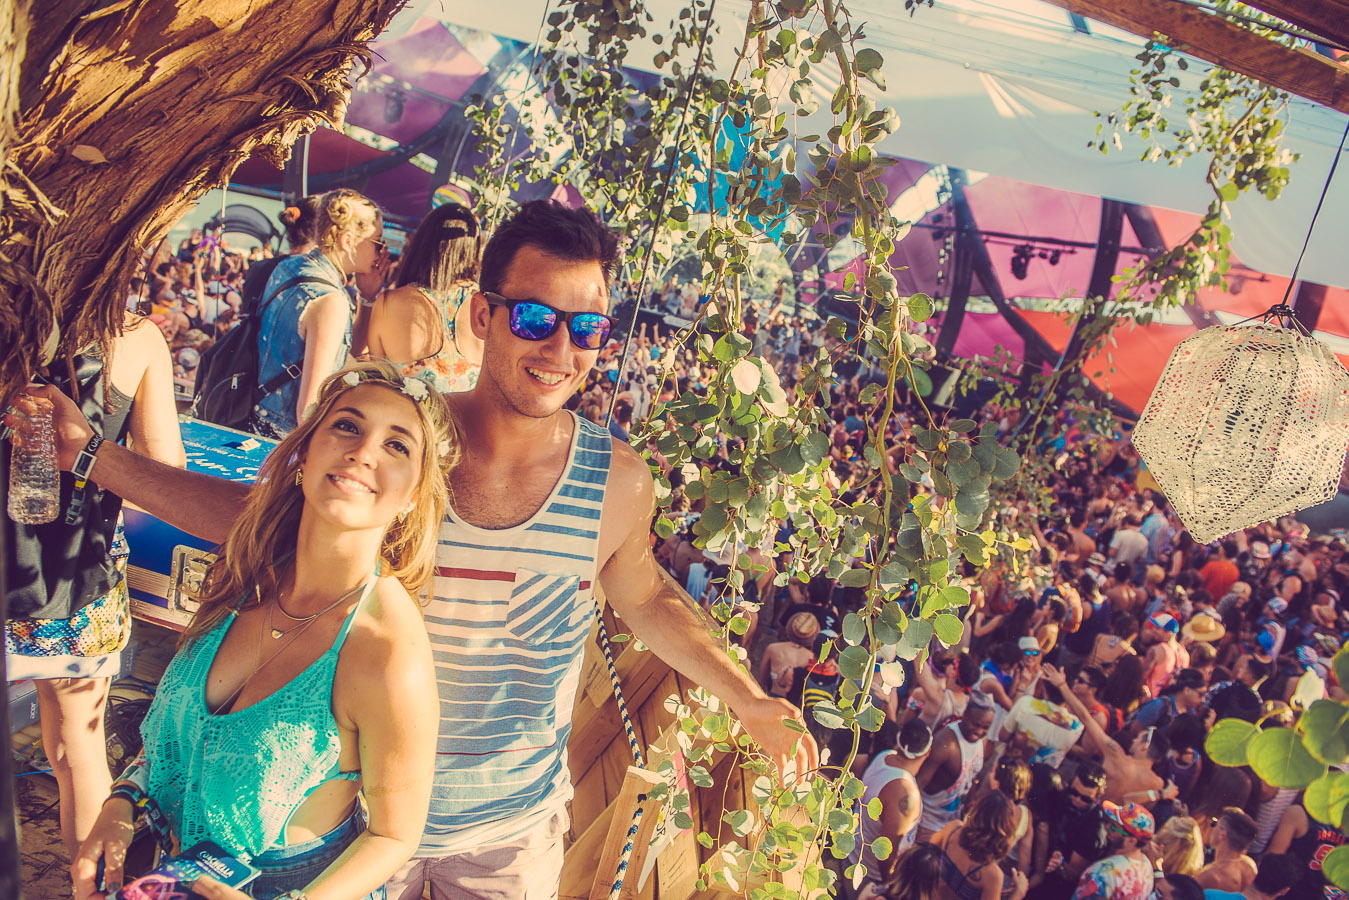 coachella-2015-dolab-tree-house-hunter-leggitt-studio-23.jpg